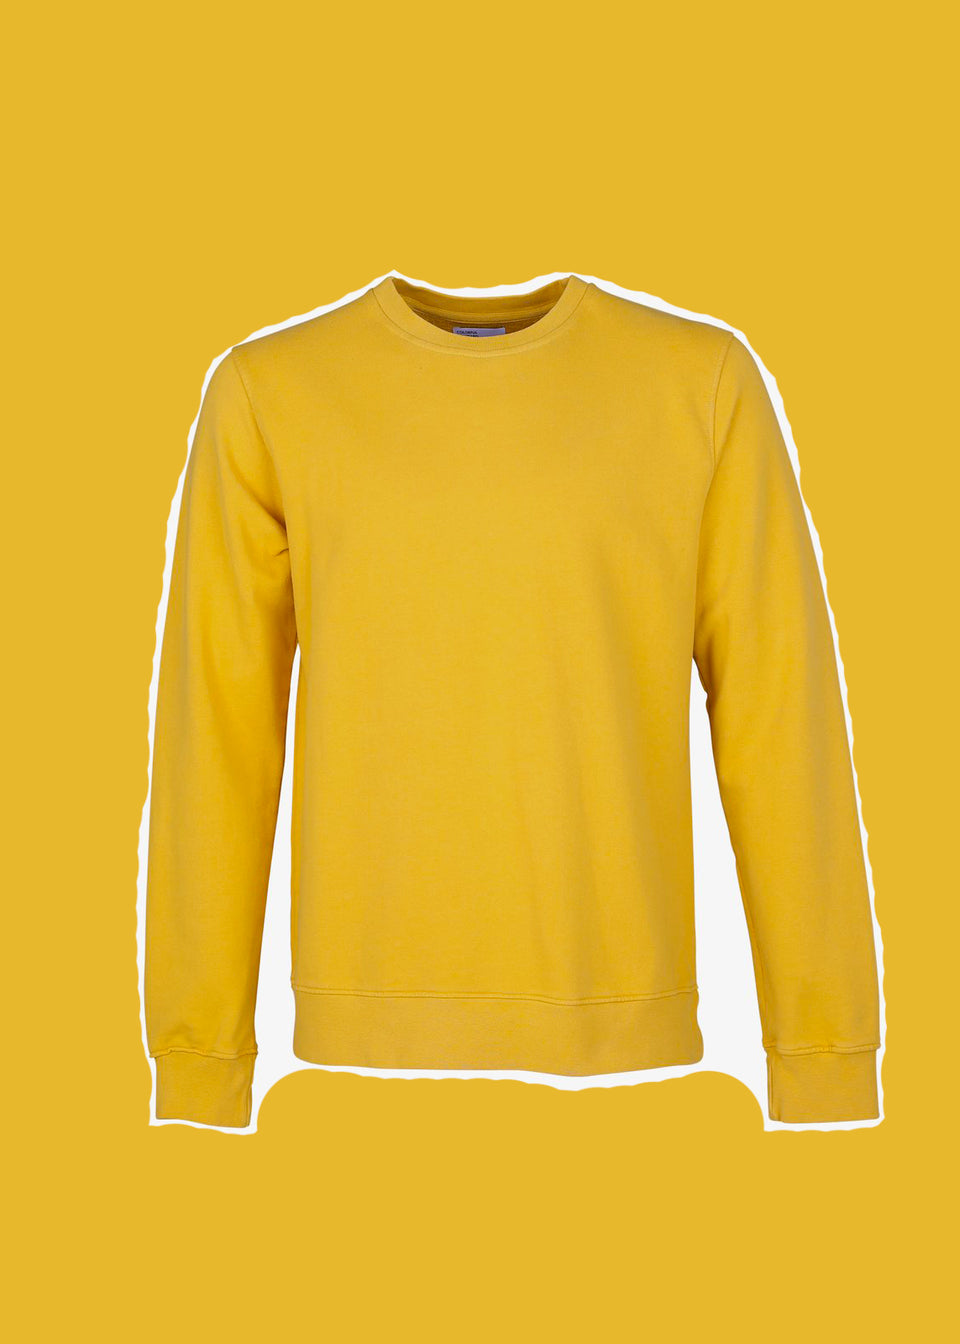 COLORFUL STANDARD • Sweat Crewneck Jaune